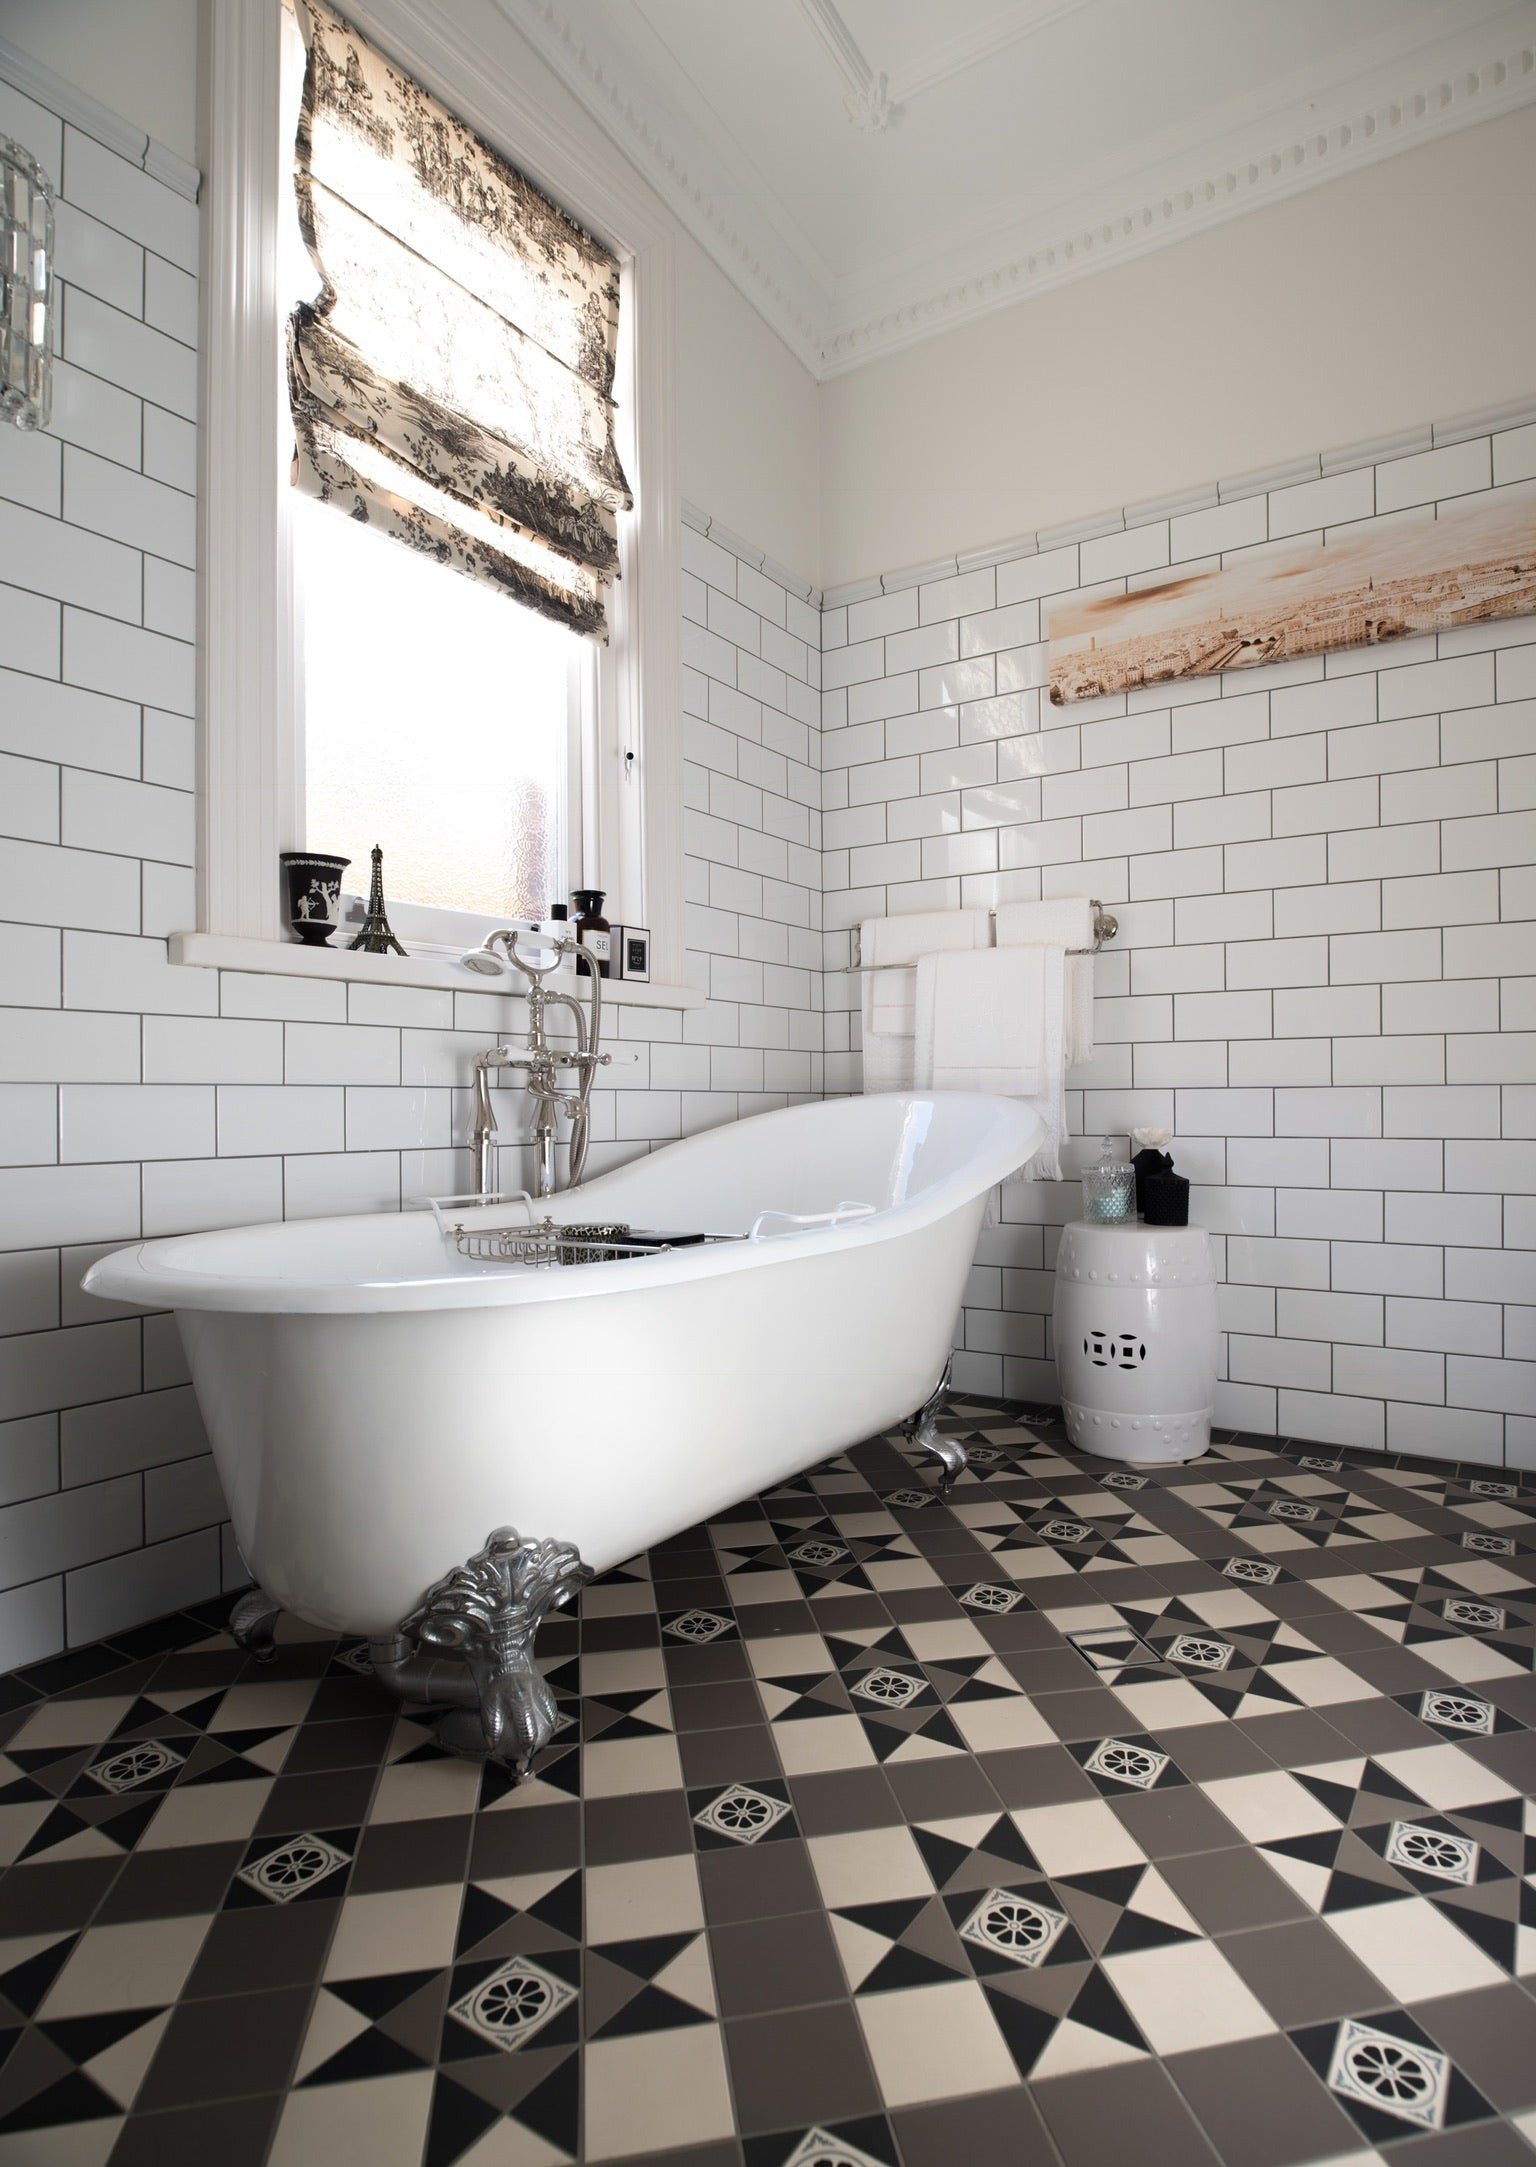 Subway_tiles_bathroom